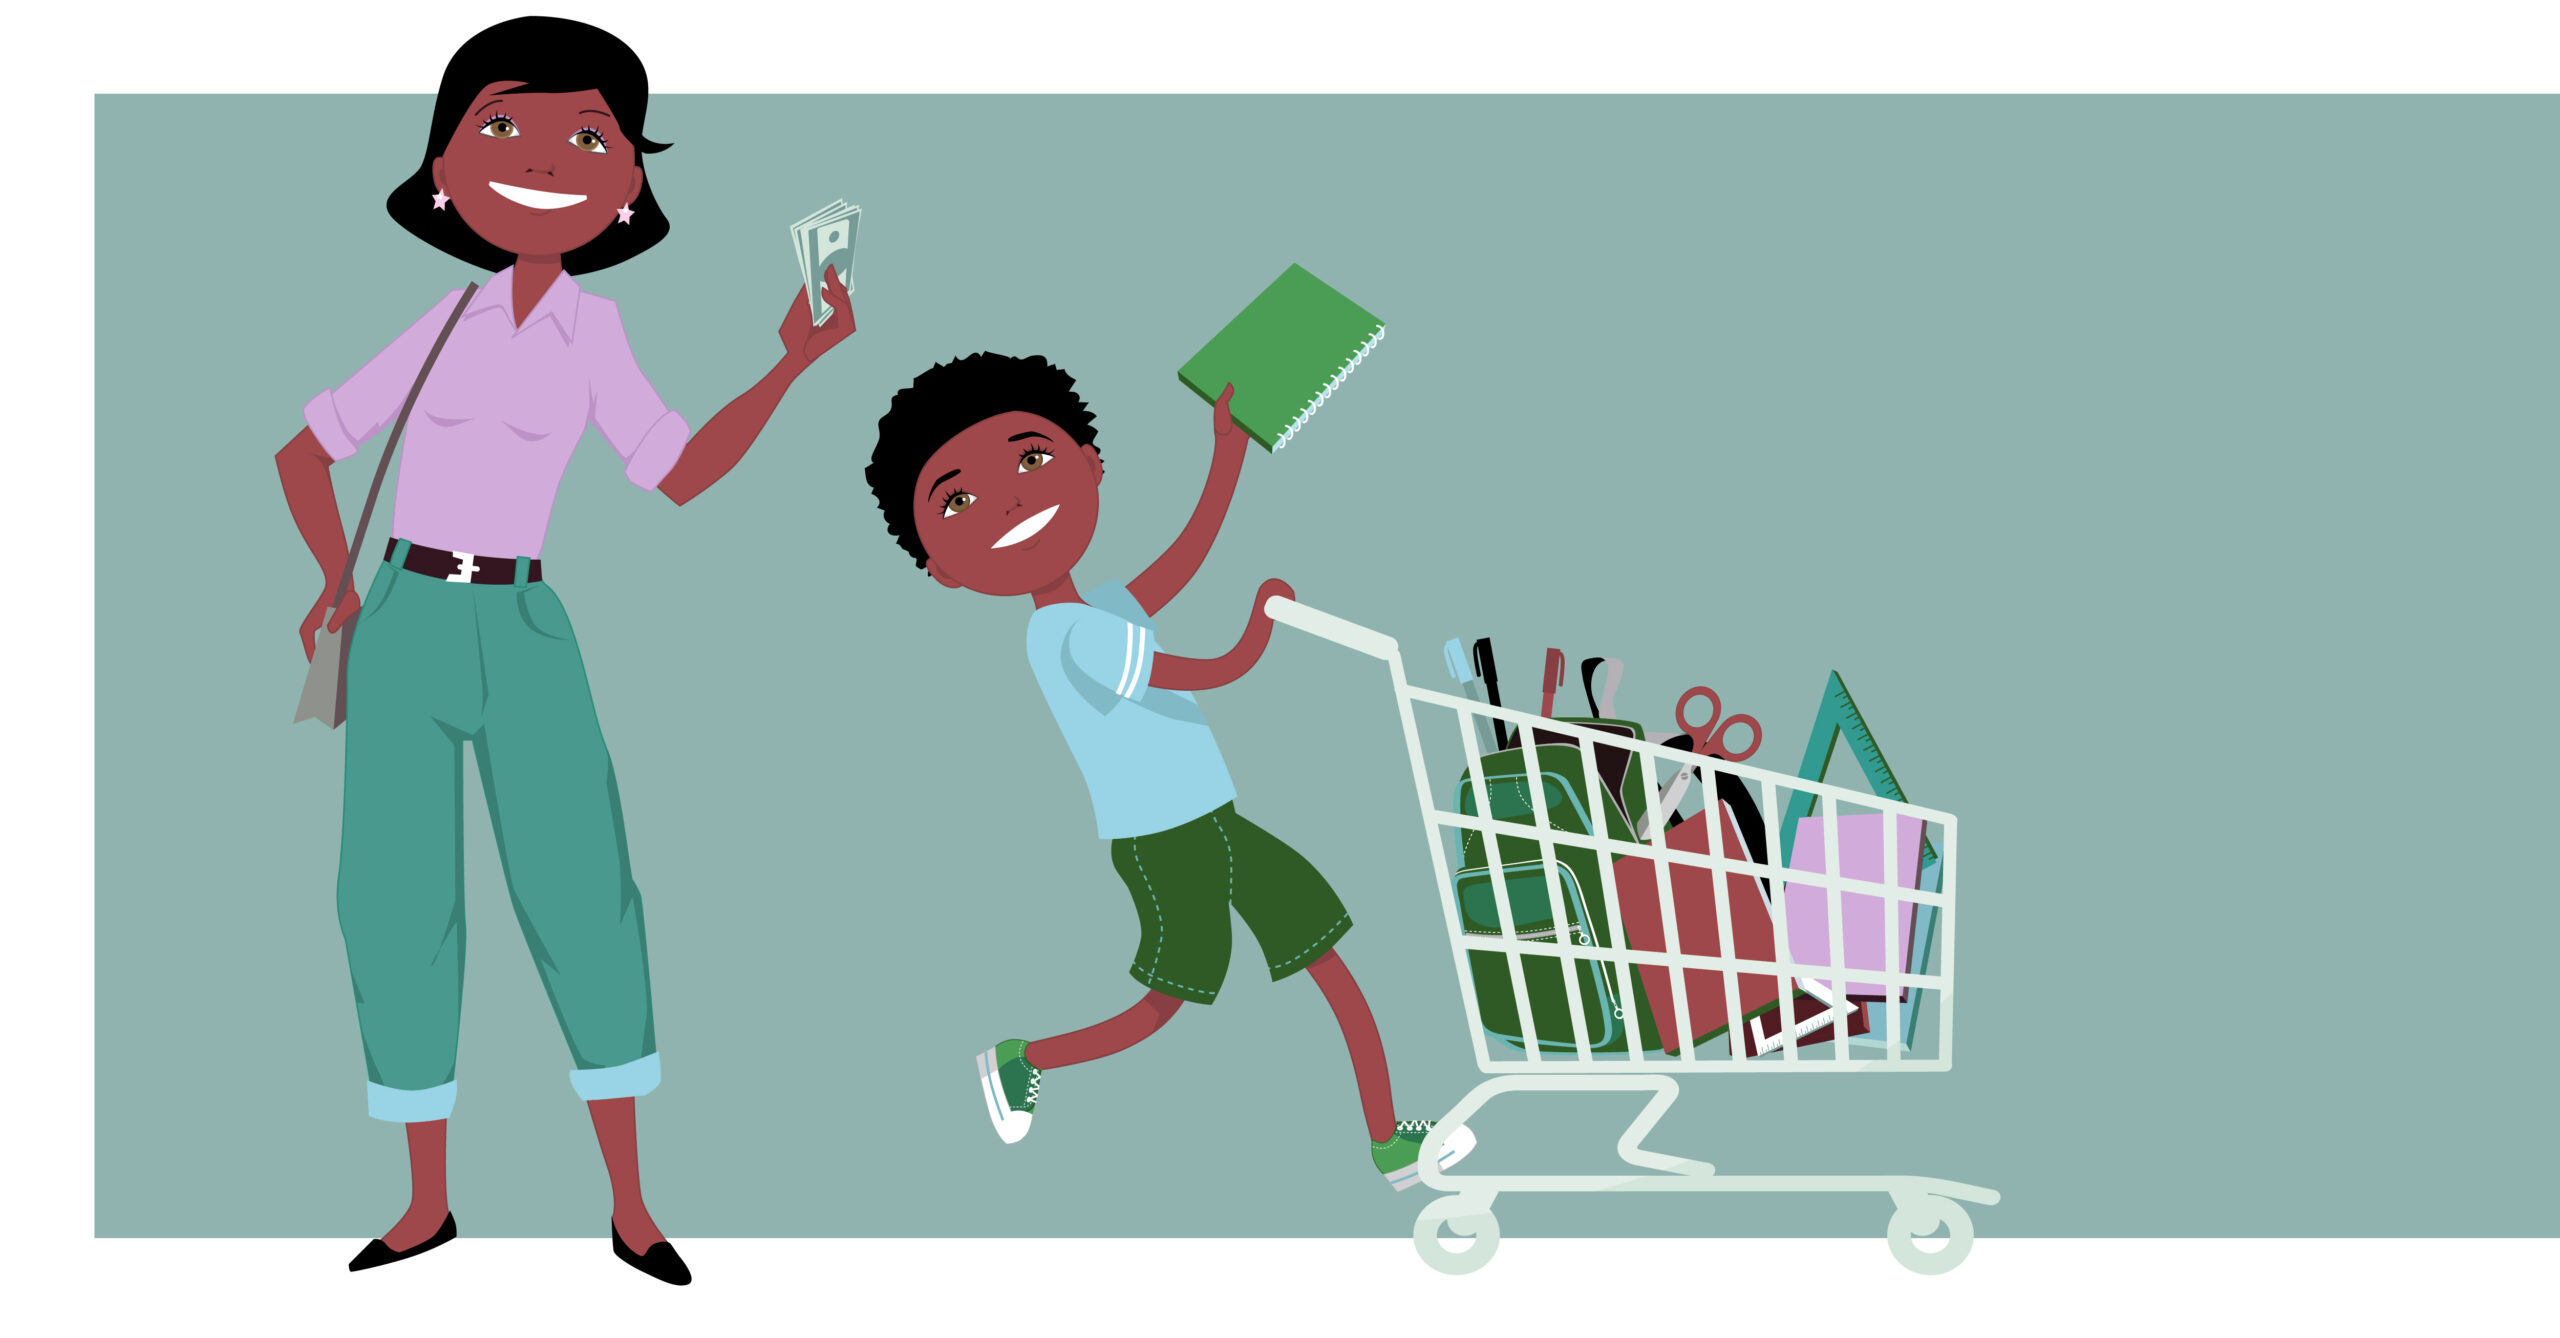 Getting Parents To Select Your Store For Back To School Shopping